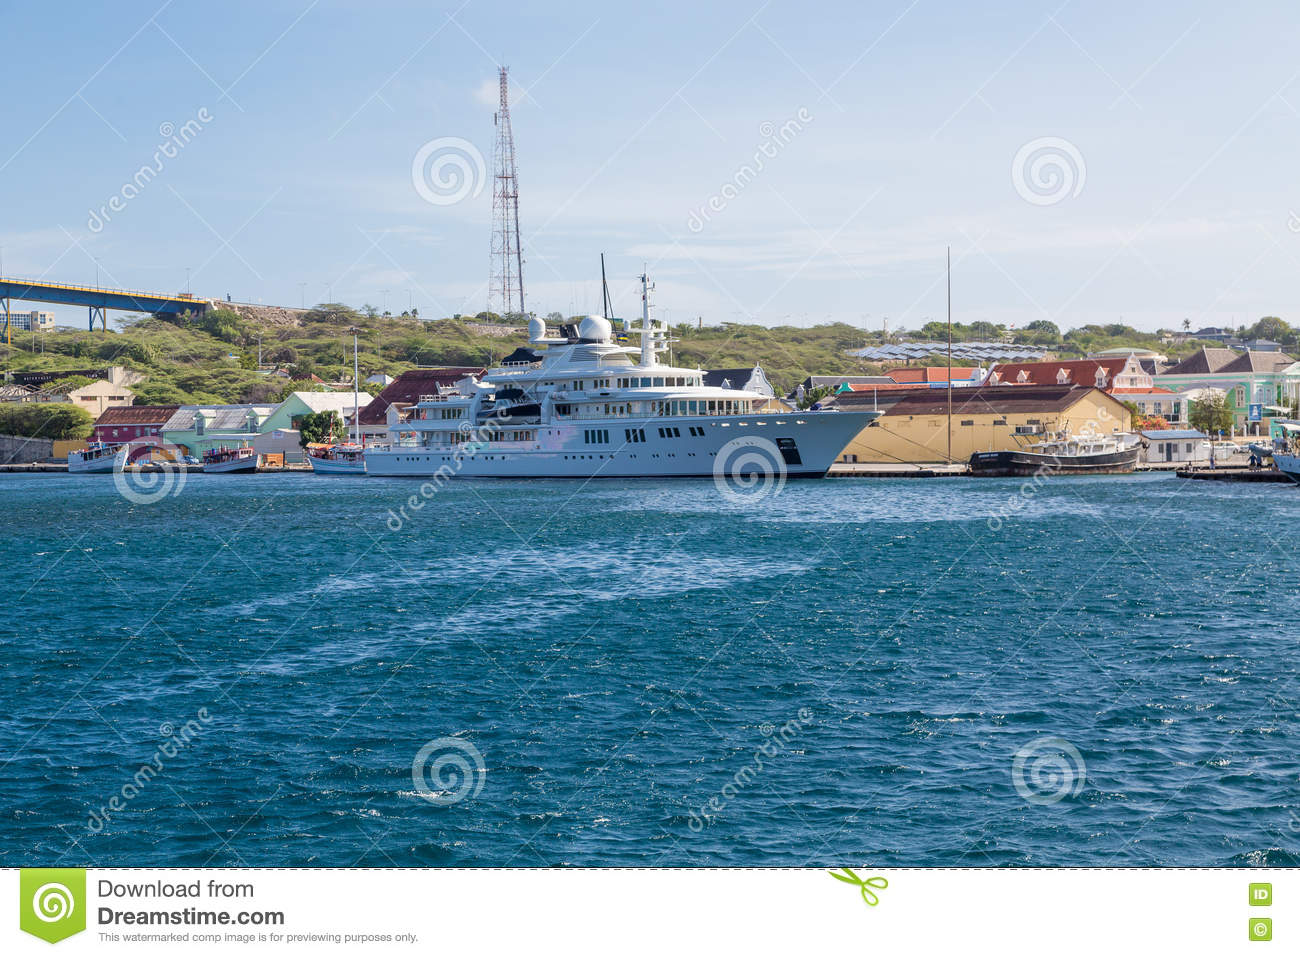 Enorme Yacht in Curaçao